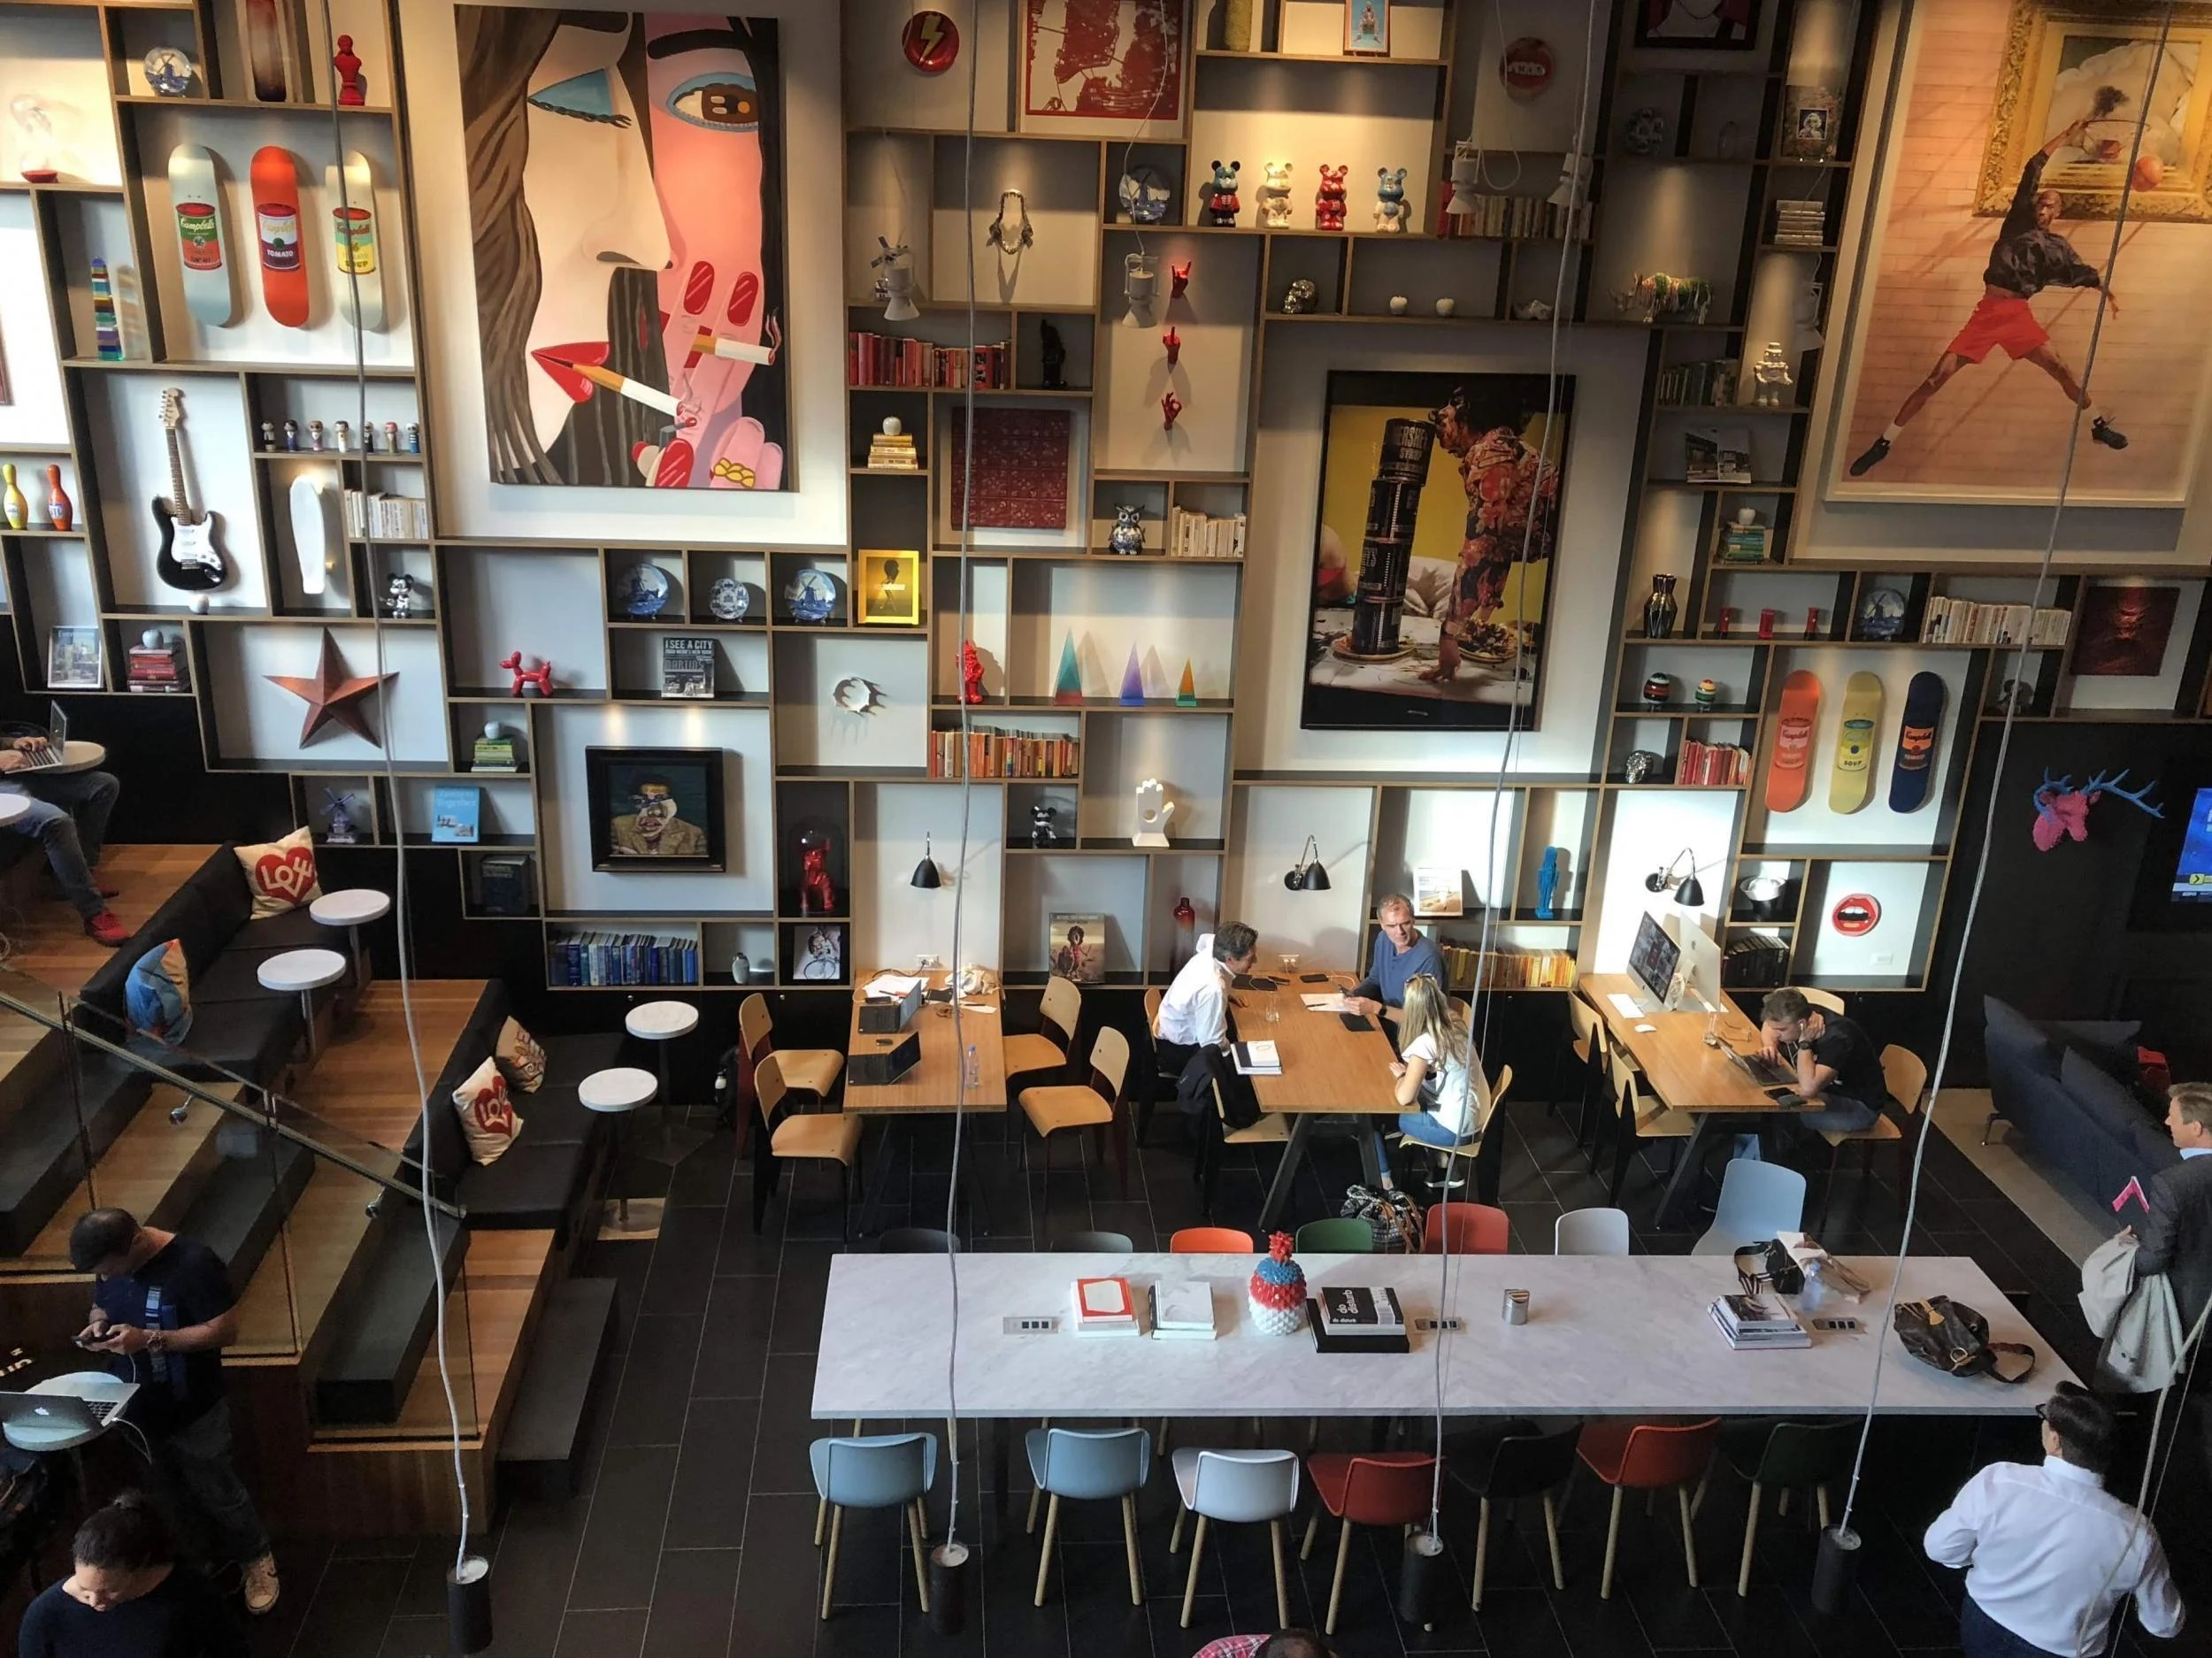 Citizenm New York Bowery Hotel Review London Evening Standard